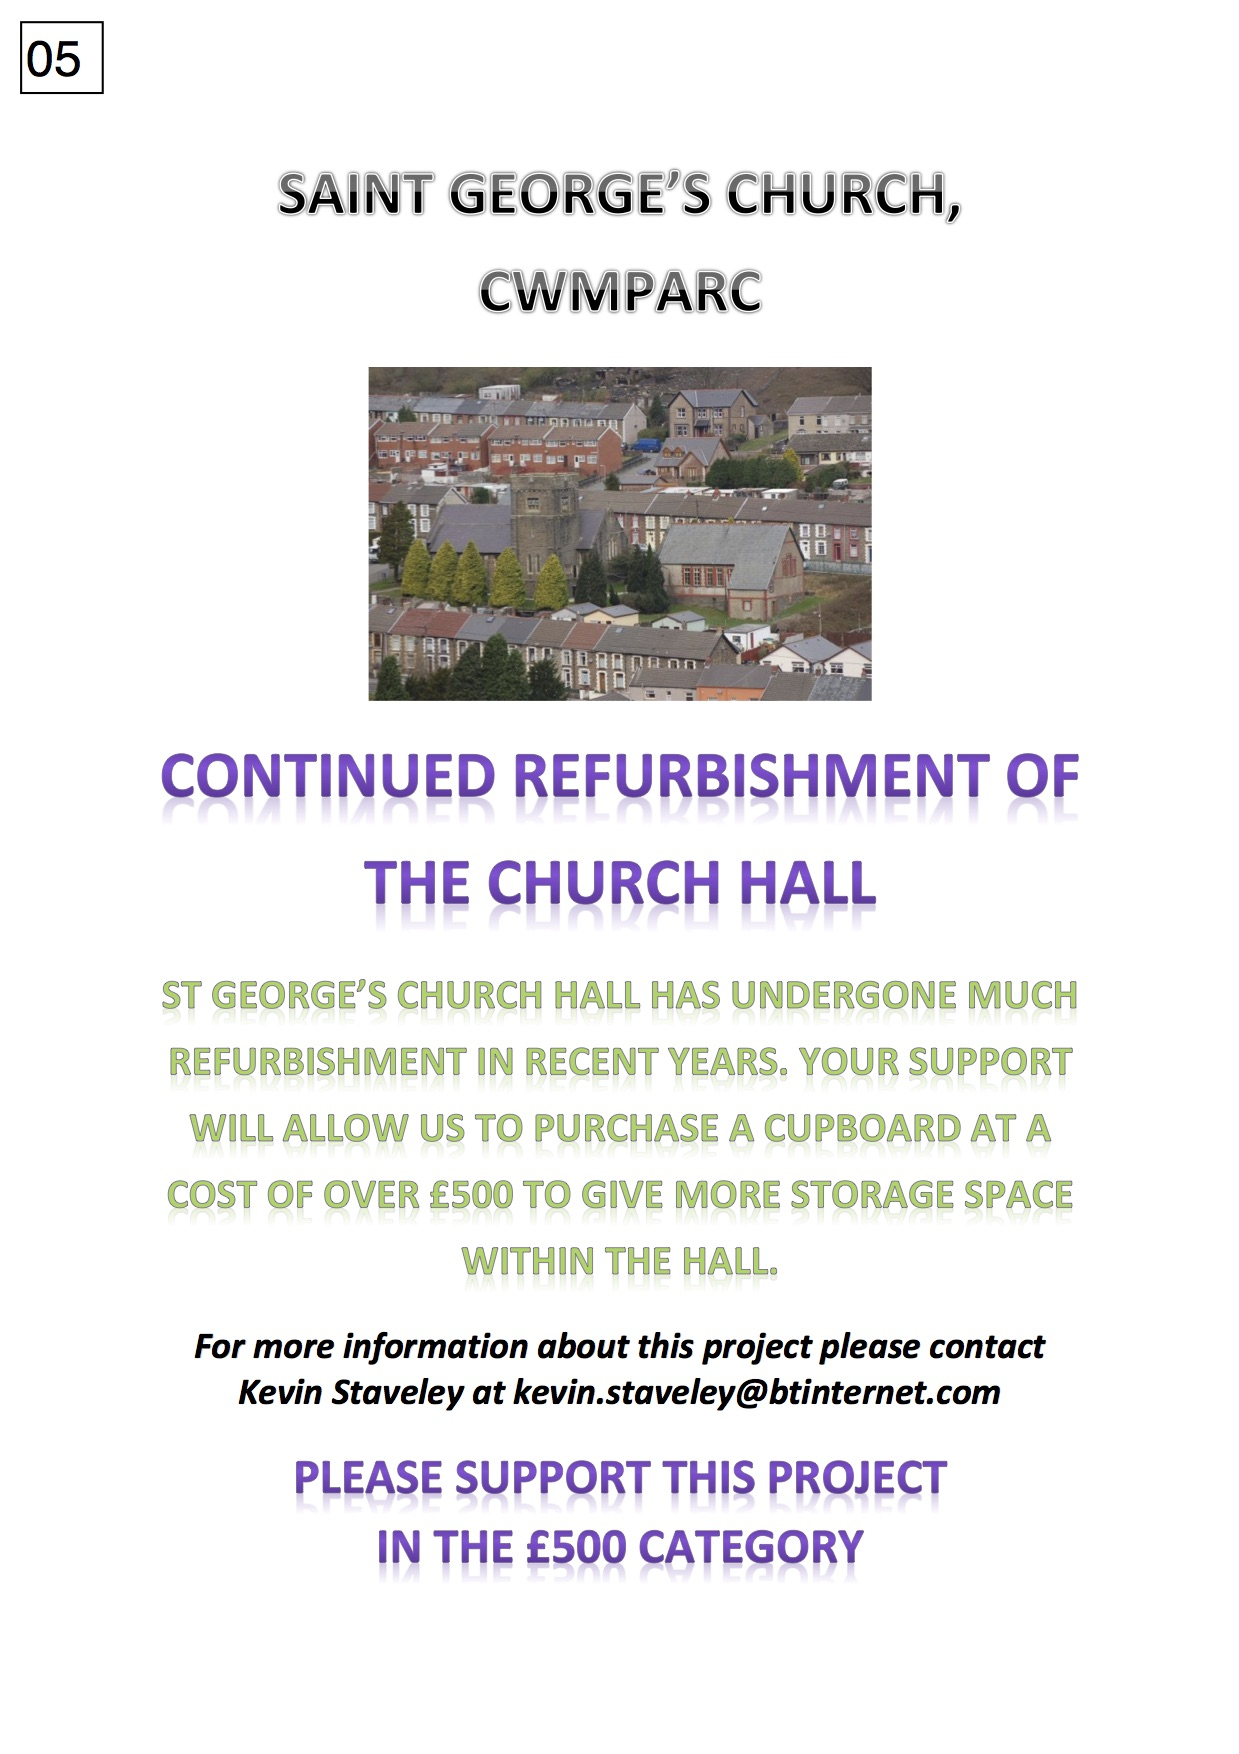 05._St_George's_Church_-_Poster_£500_-_271017